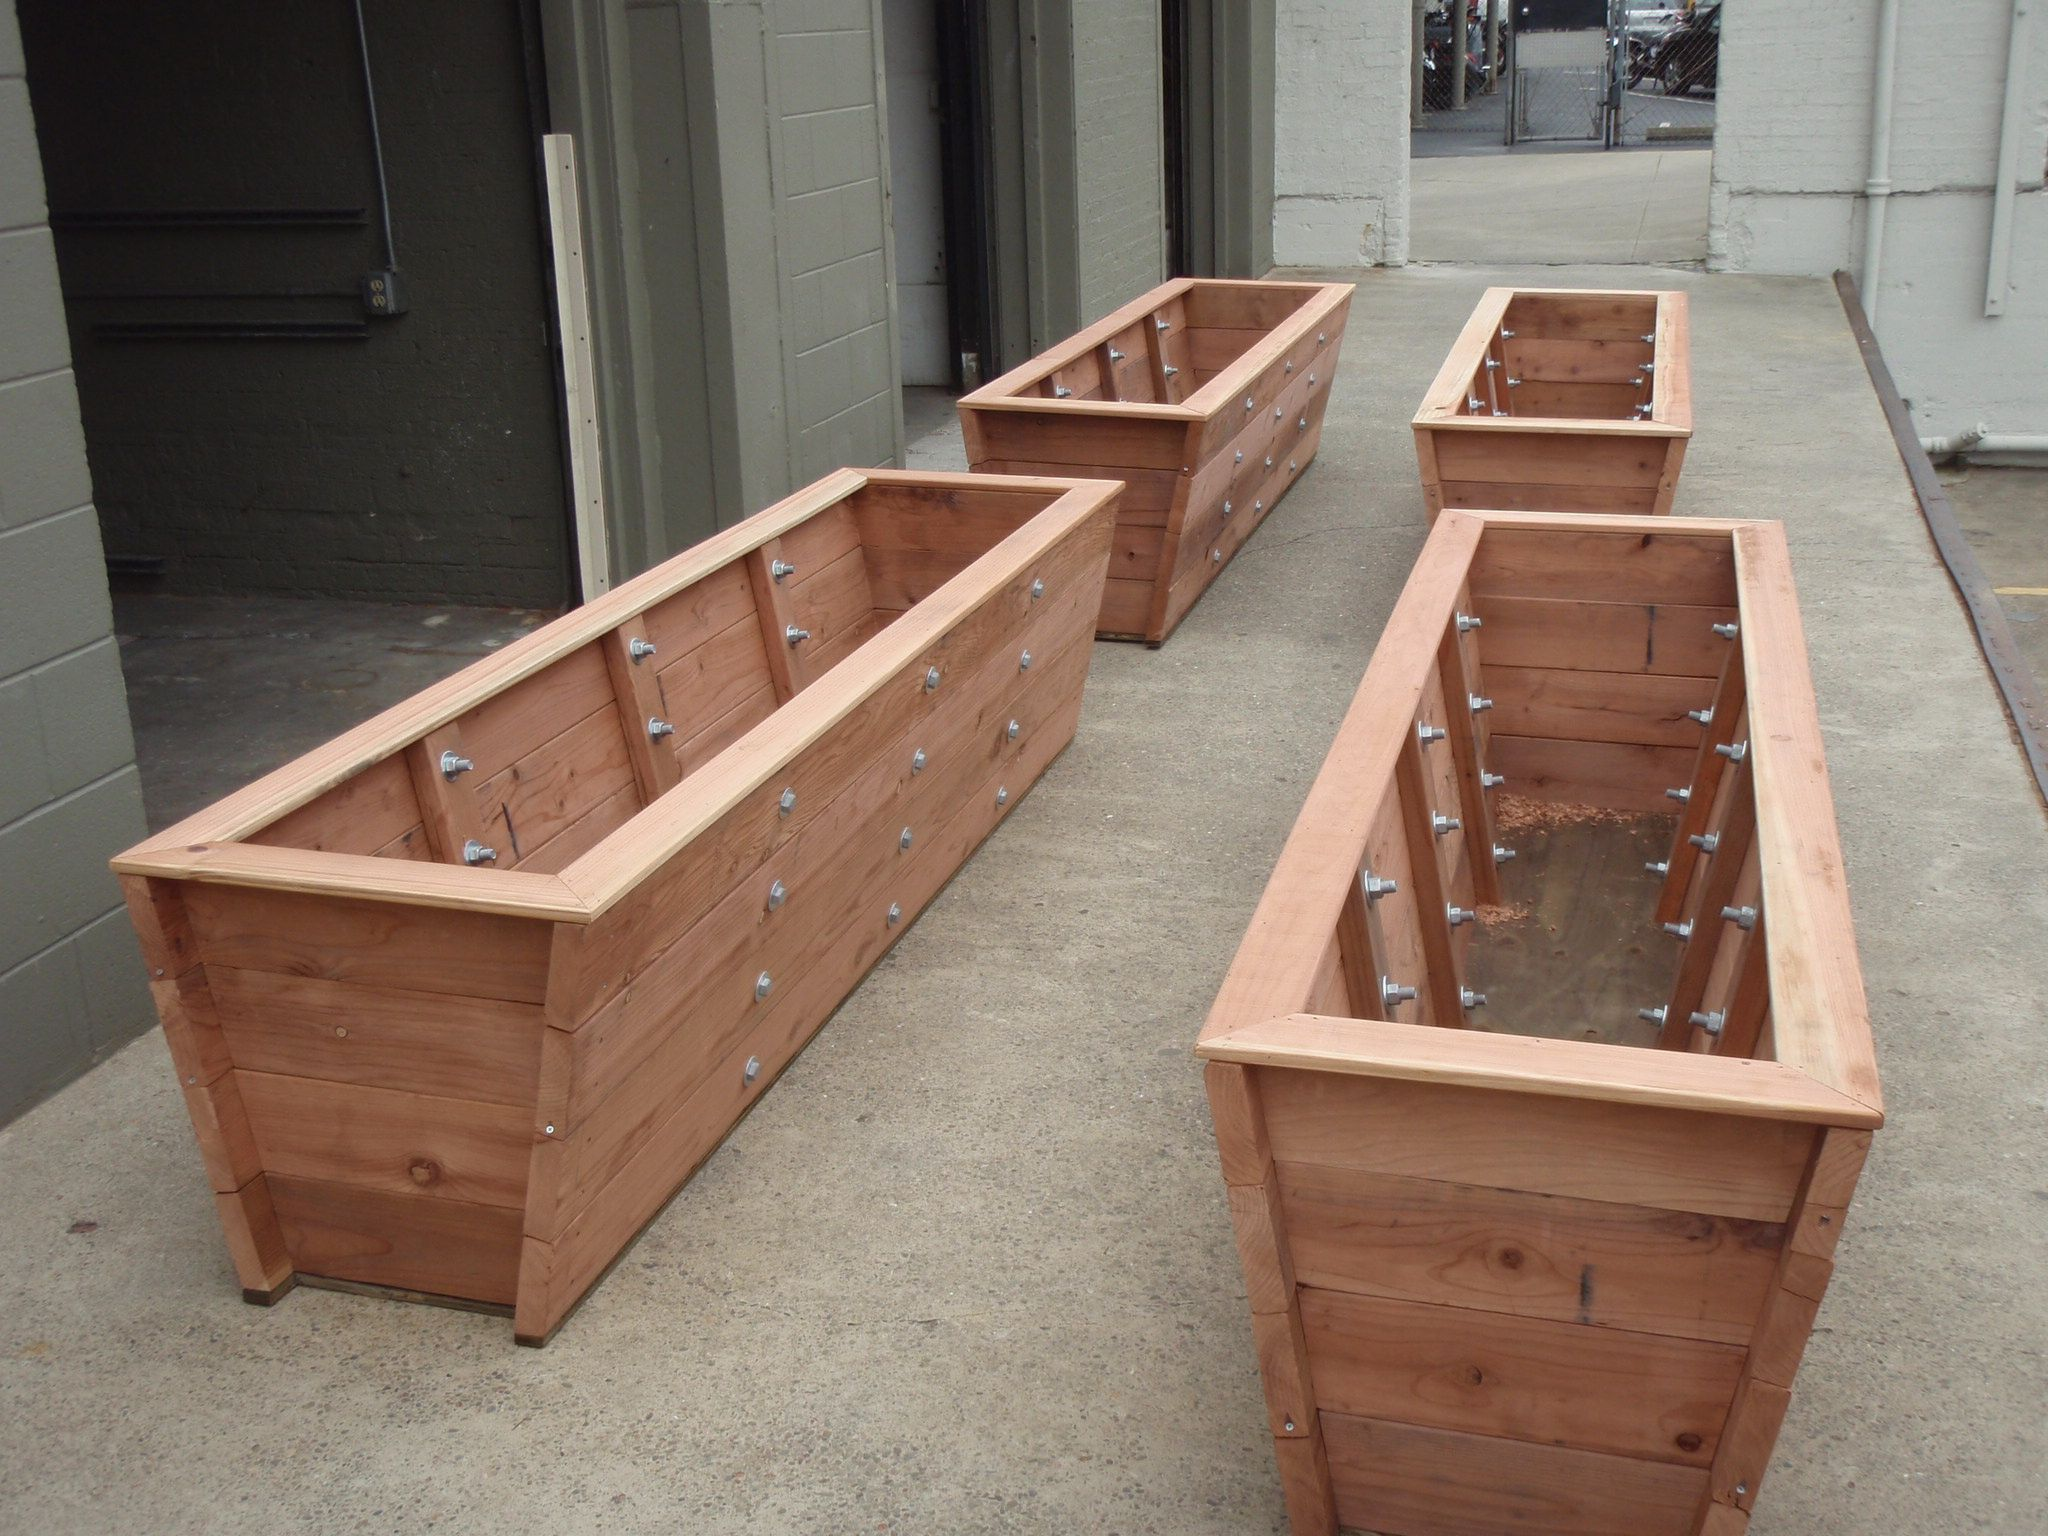 large redwood planter boxes made for tall bamboo trick. Black Bedroom Furniture Sets. Home Design Ideas